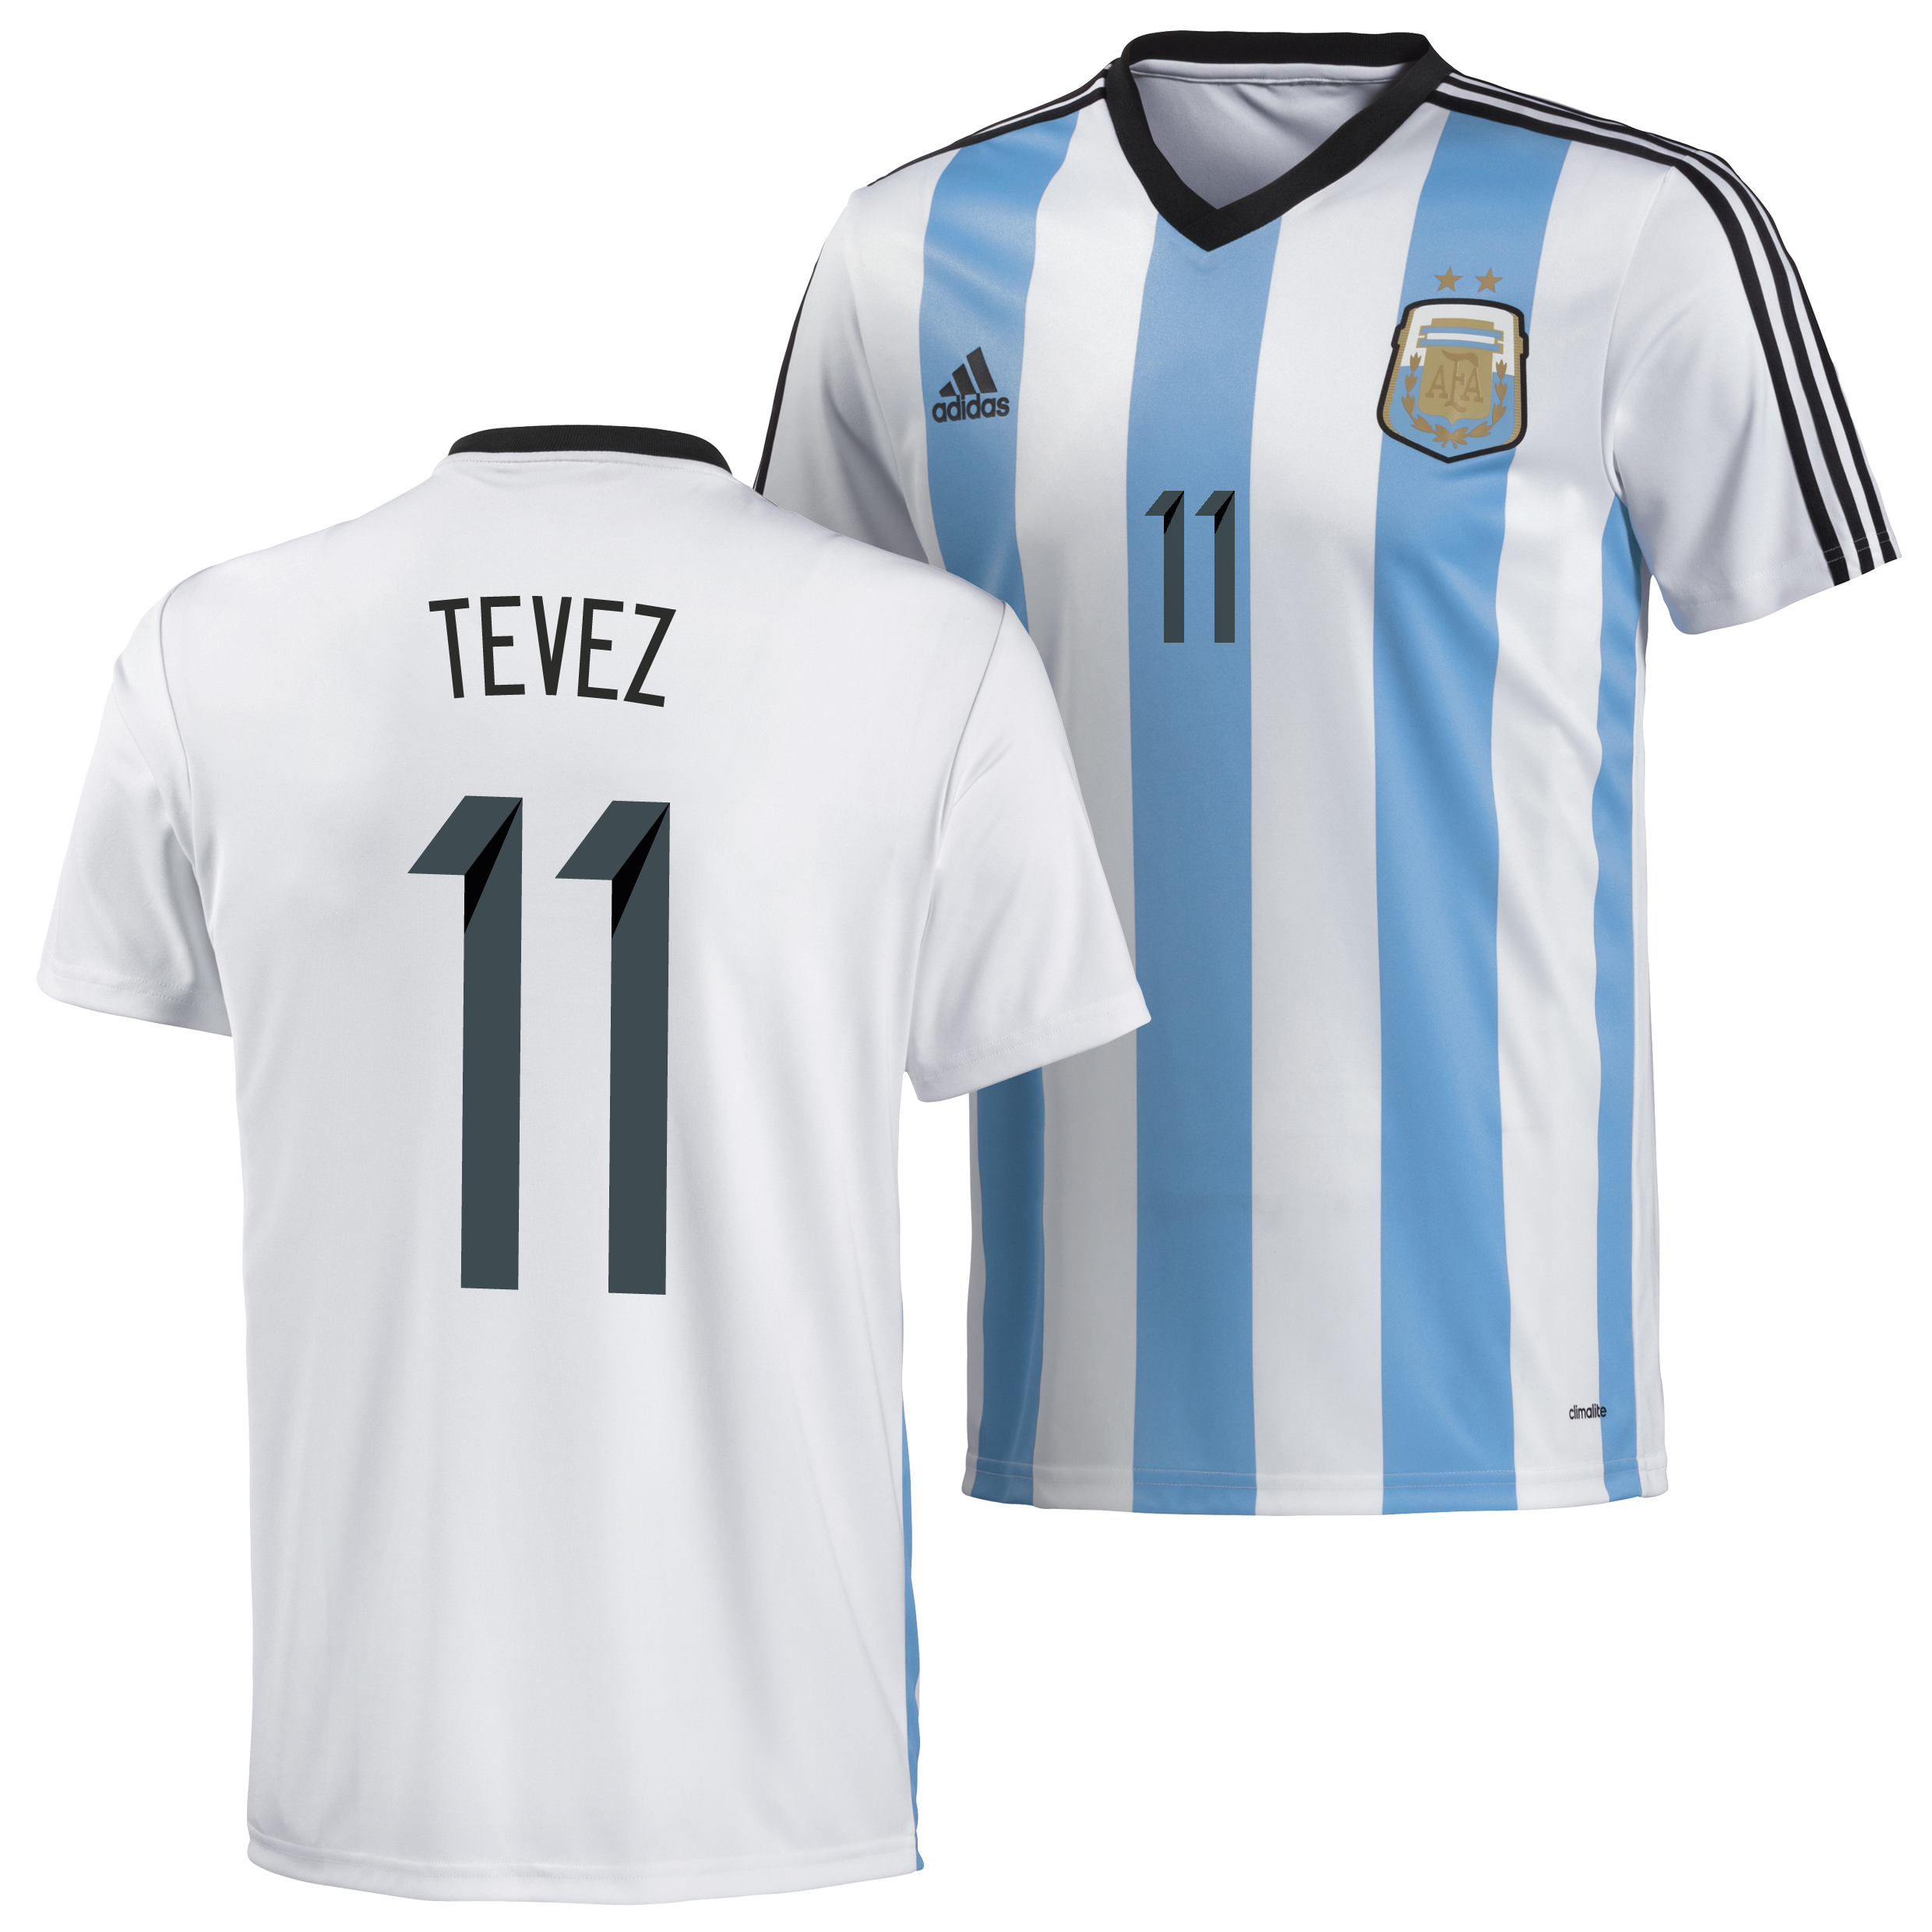 Argentina Home Replica T-Shirt 2013/14 with Tevez 11 printing